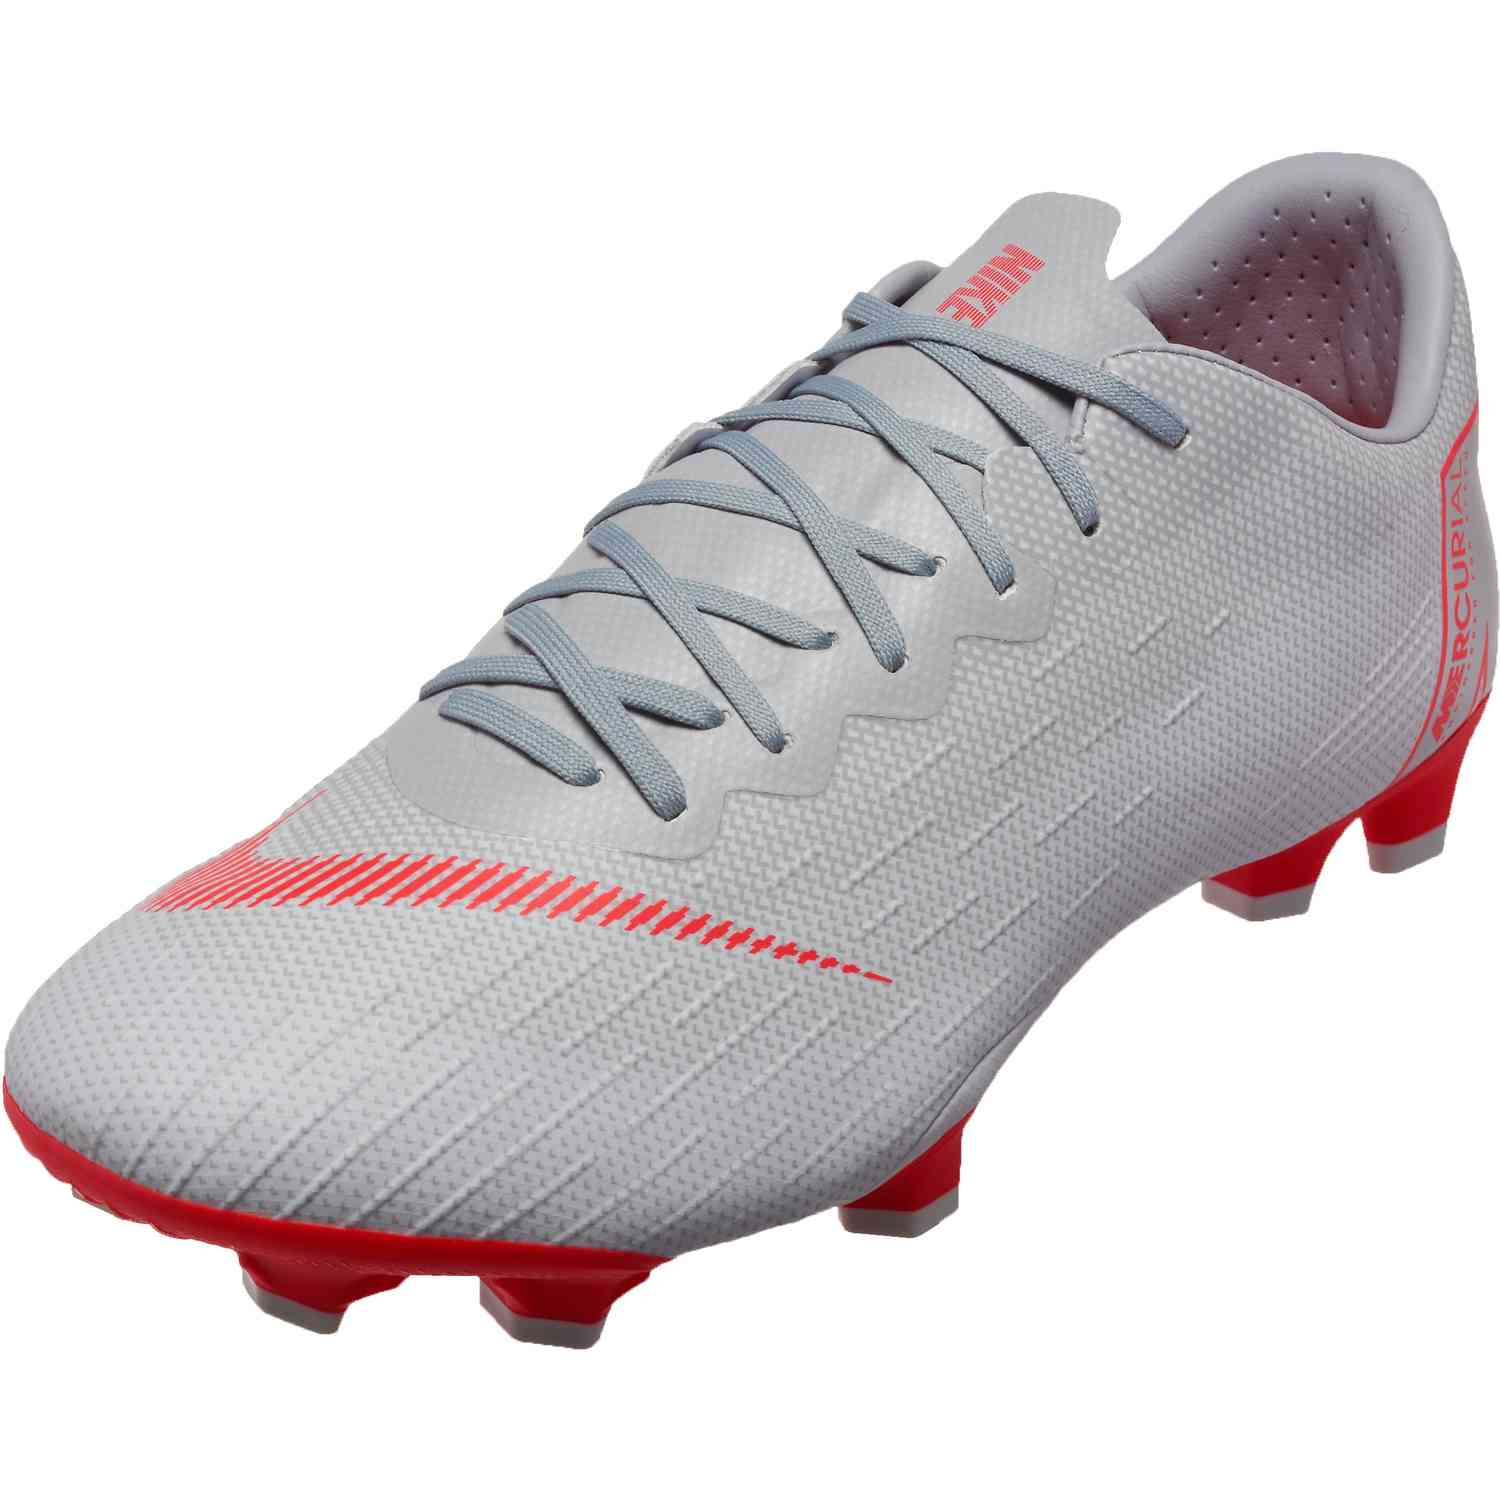 3cb964fd276 Nike Vapor 12 Pro FG - Wolf Grey Light Crimson Pure Platinum ...